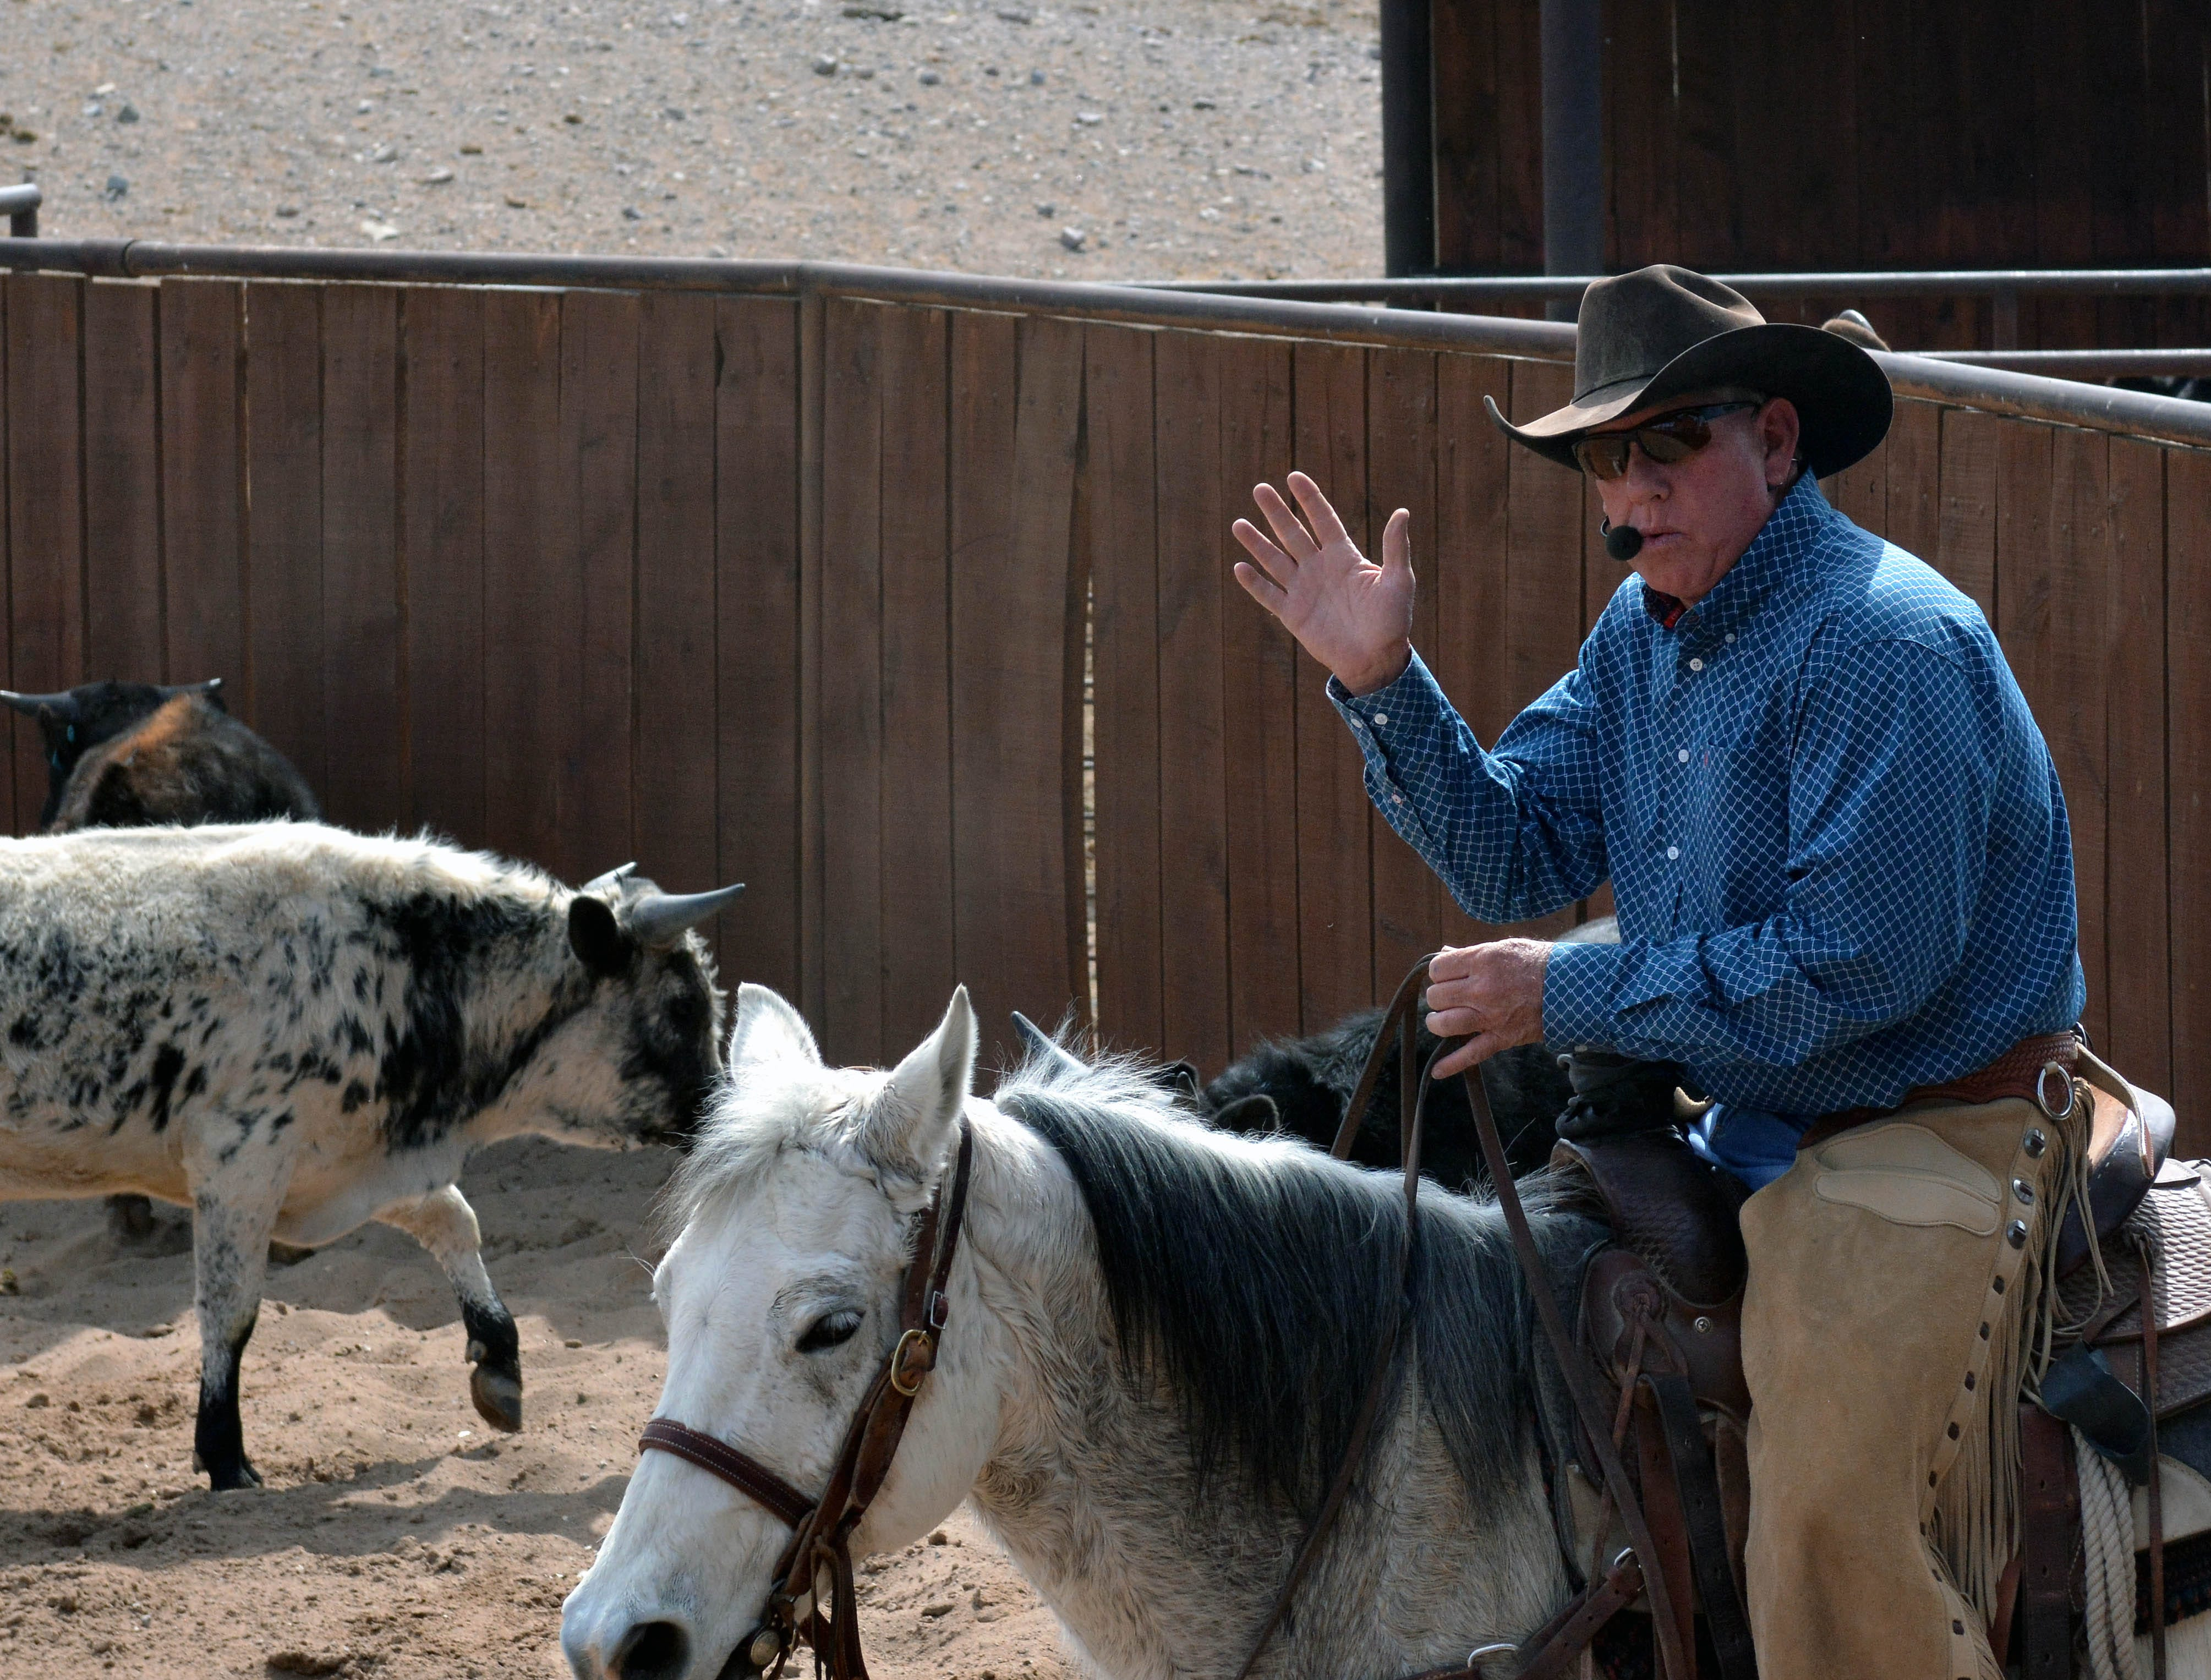 Farm and Ranch Heritage Museum livestock foreman Greg Ball gives a lecture about Corriente yearling bulls during the Parade of Breeds at the 20th annual Cowboy Days, held Saturday, March 2, 2019, at the New Mexico Farm and Ranch Heritage Museum.